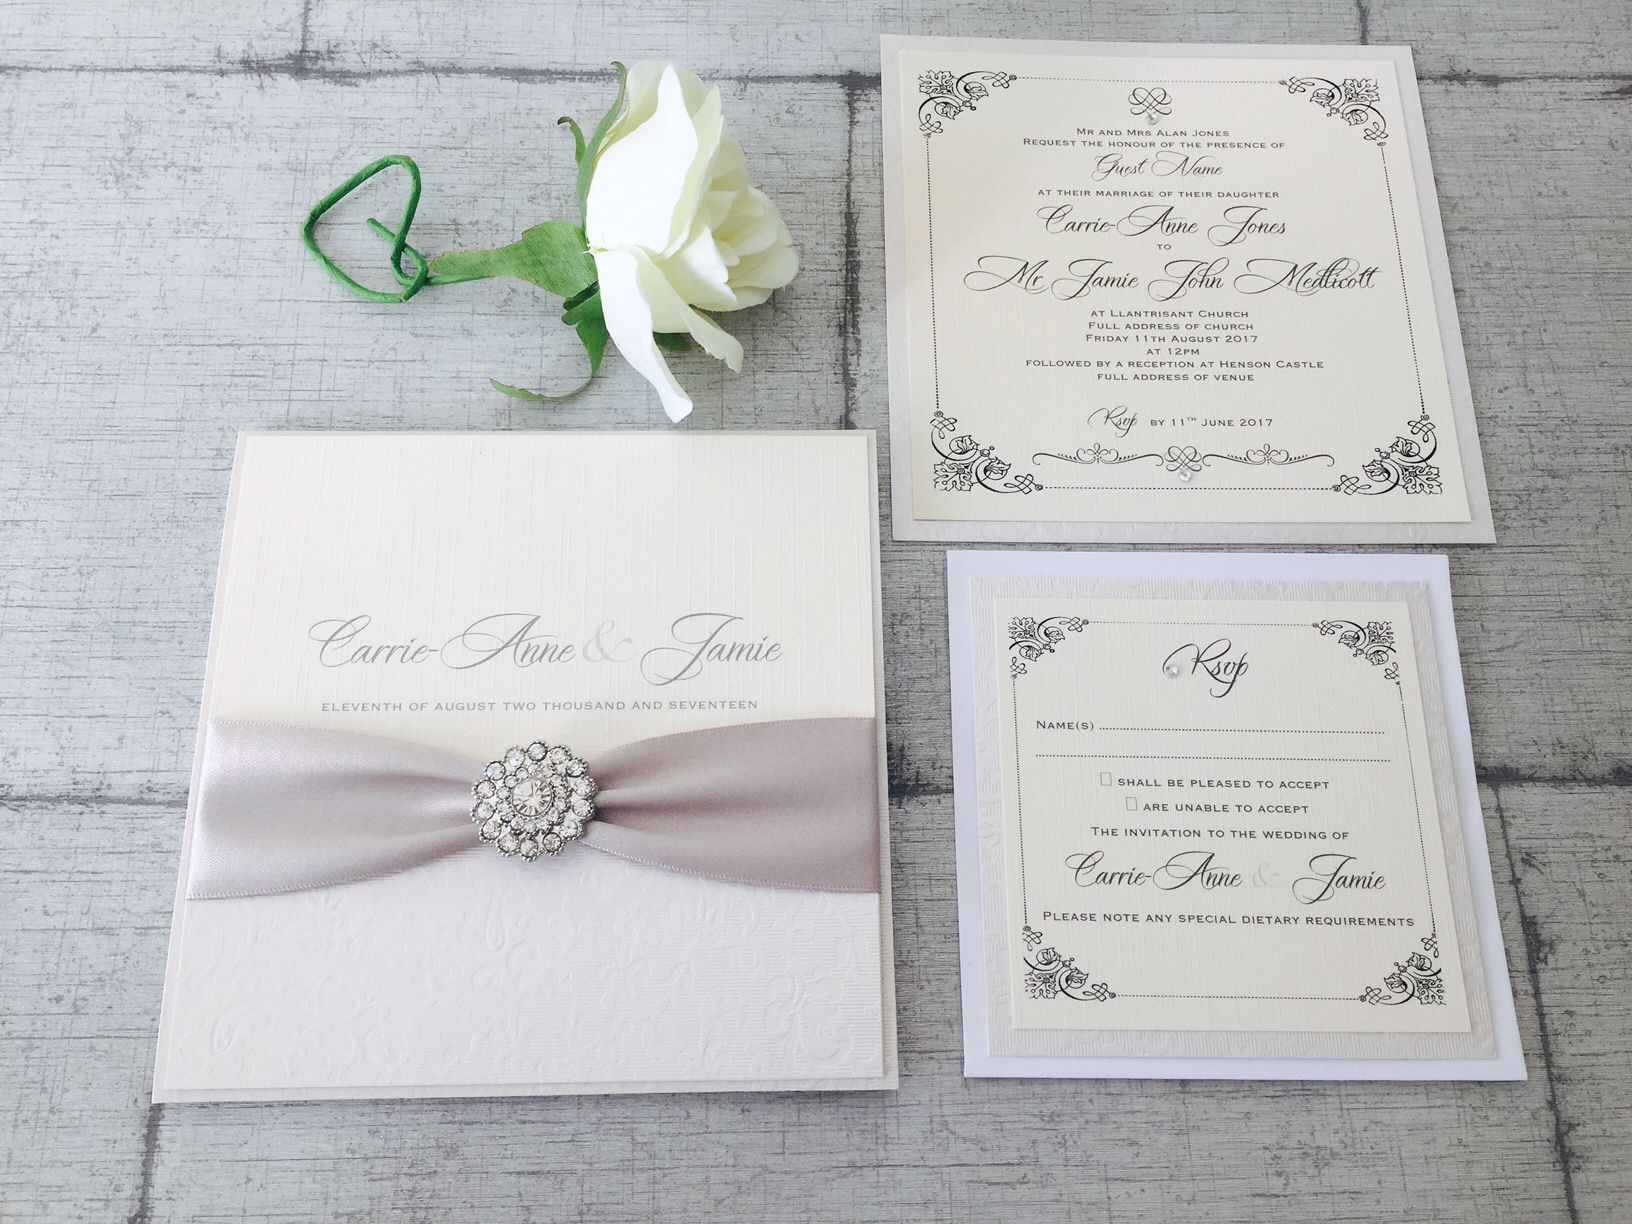 Romance invitation with vintage diamante crystal